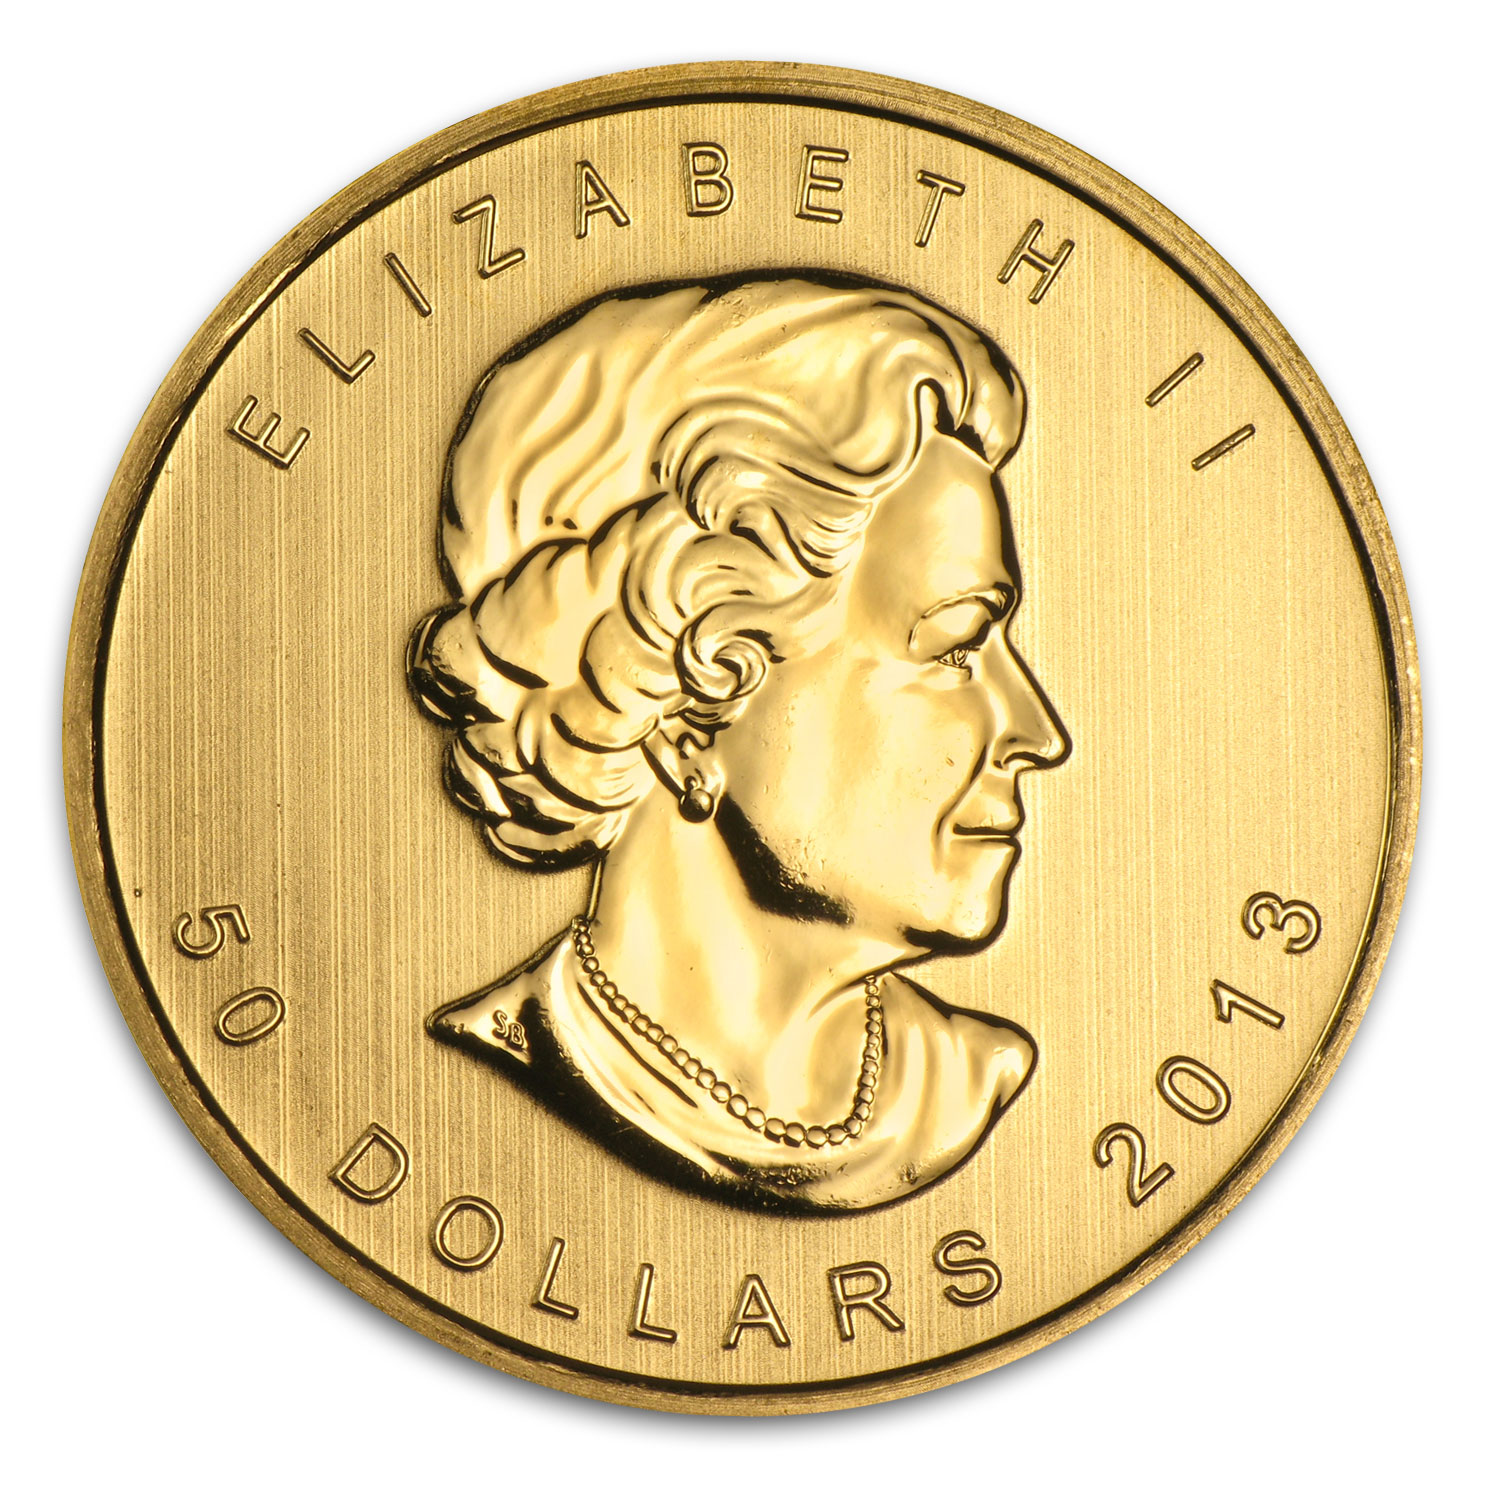 2013 1 oz Gold Canadian Maple Leafs (10-Coin MintDirect® Tube)